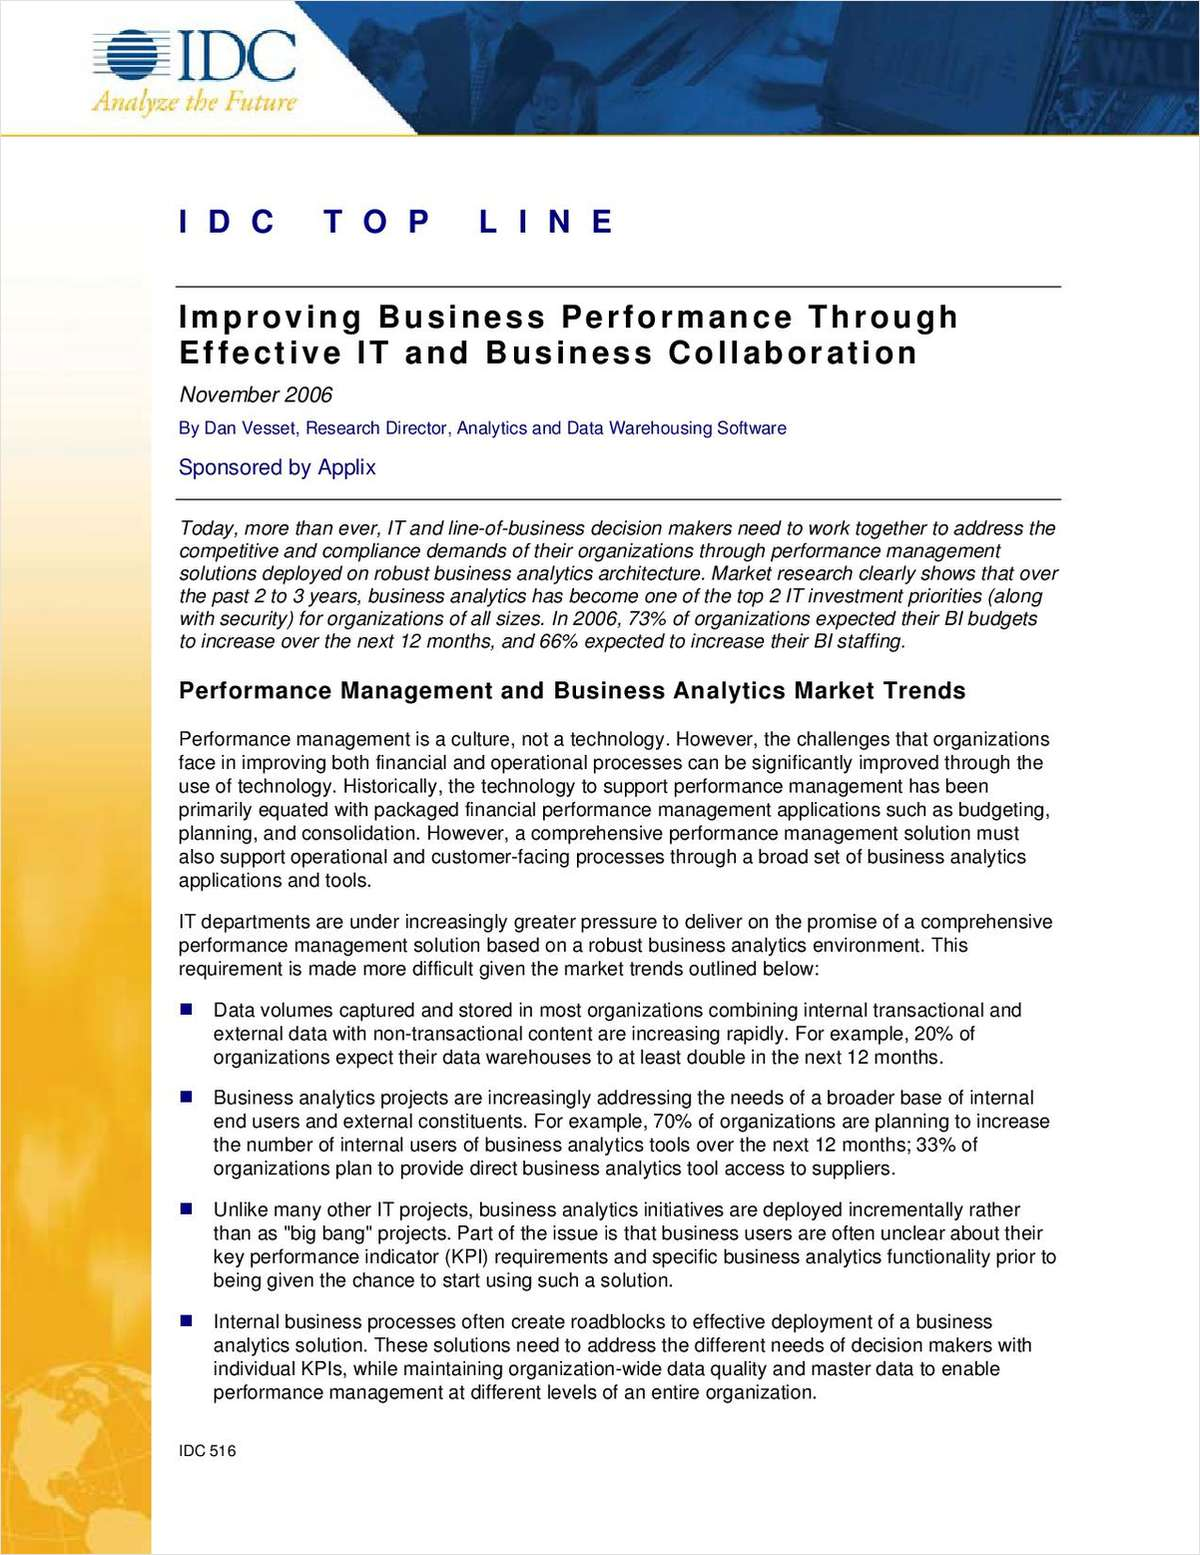 Improving Business Performance through Effective IT and Business Collaboration